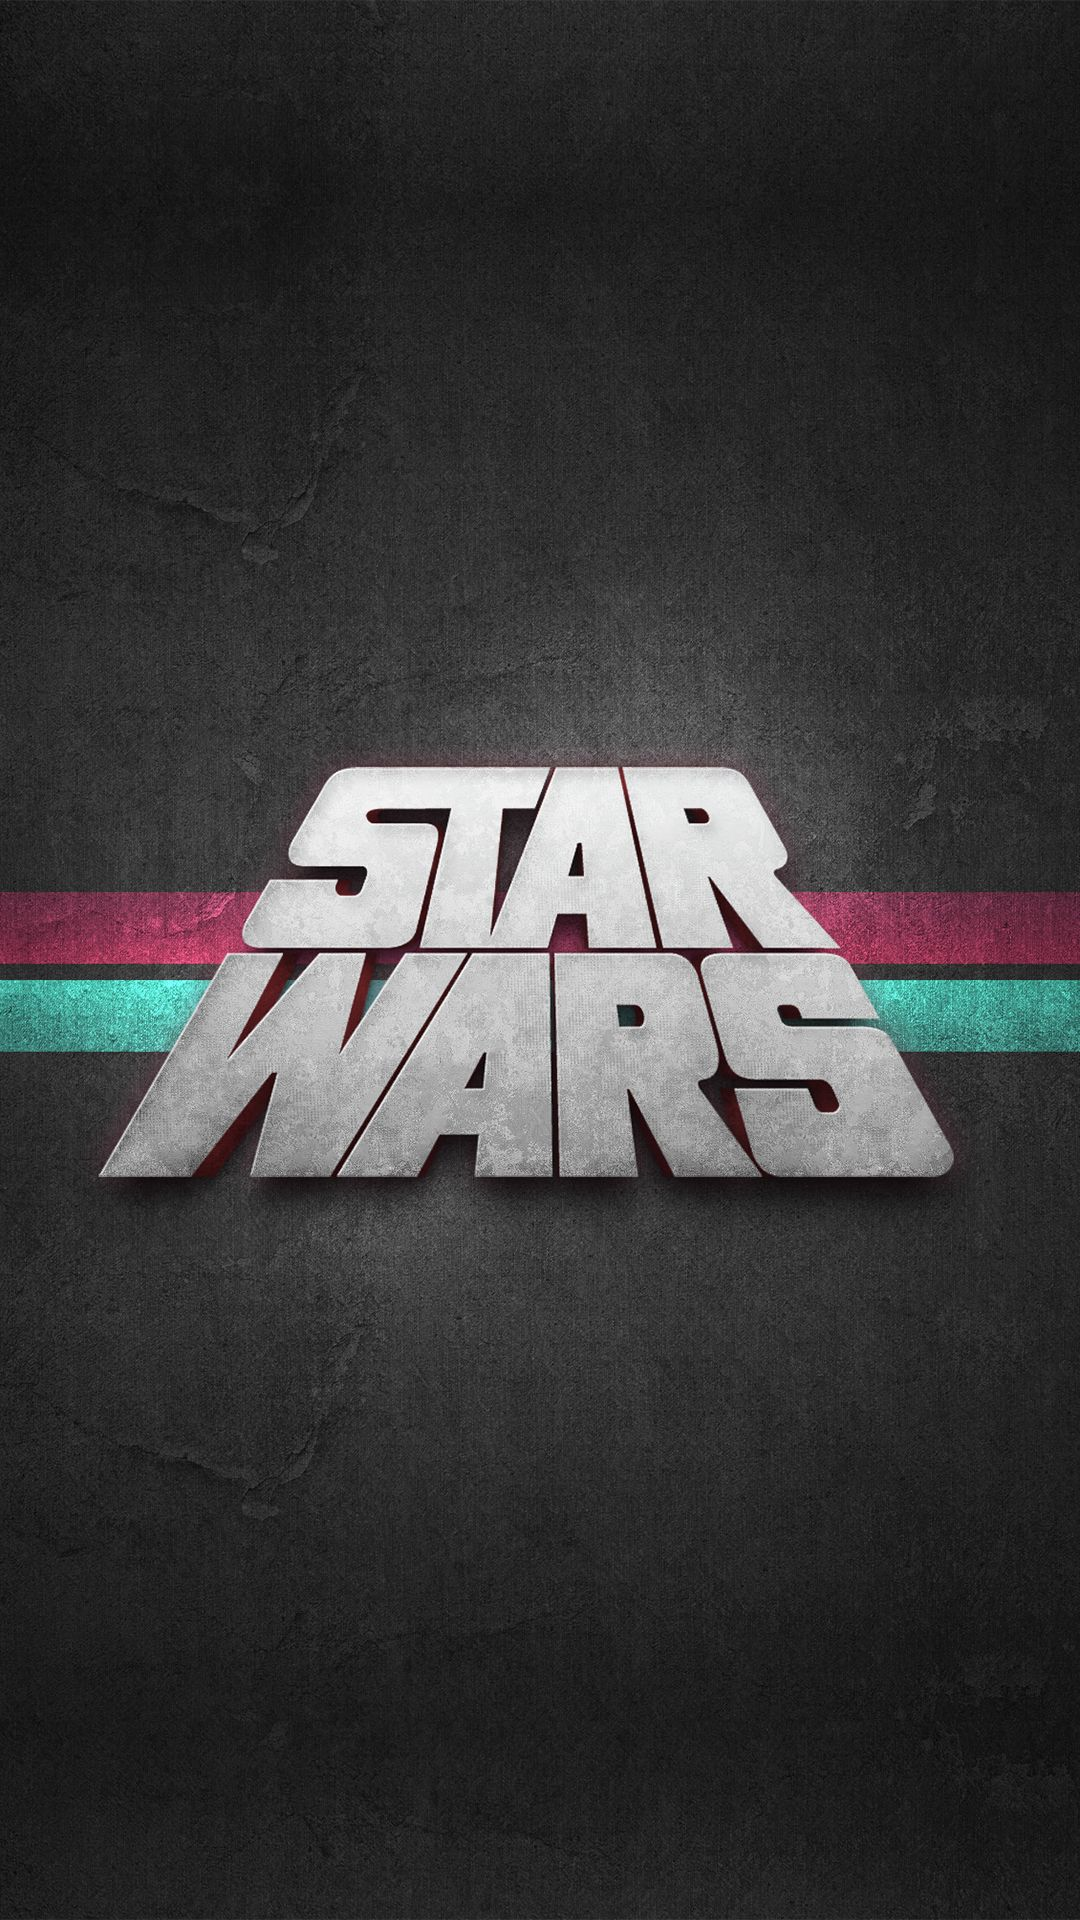 find a huge selection of cellphone wallpapers to bring your phone to life iphone backgroundshd phone wallpapersstar wars